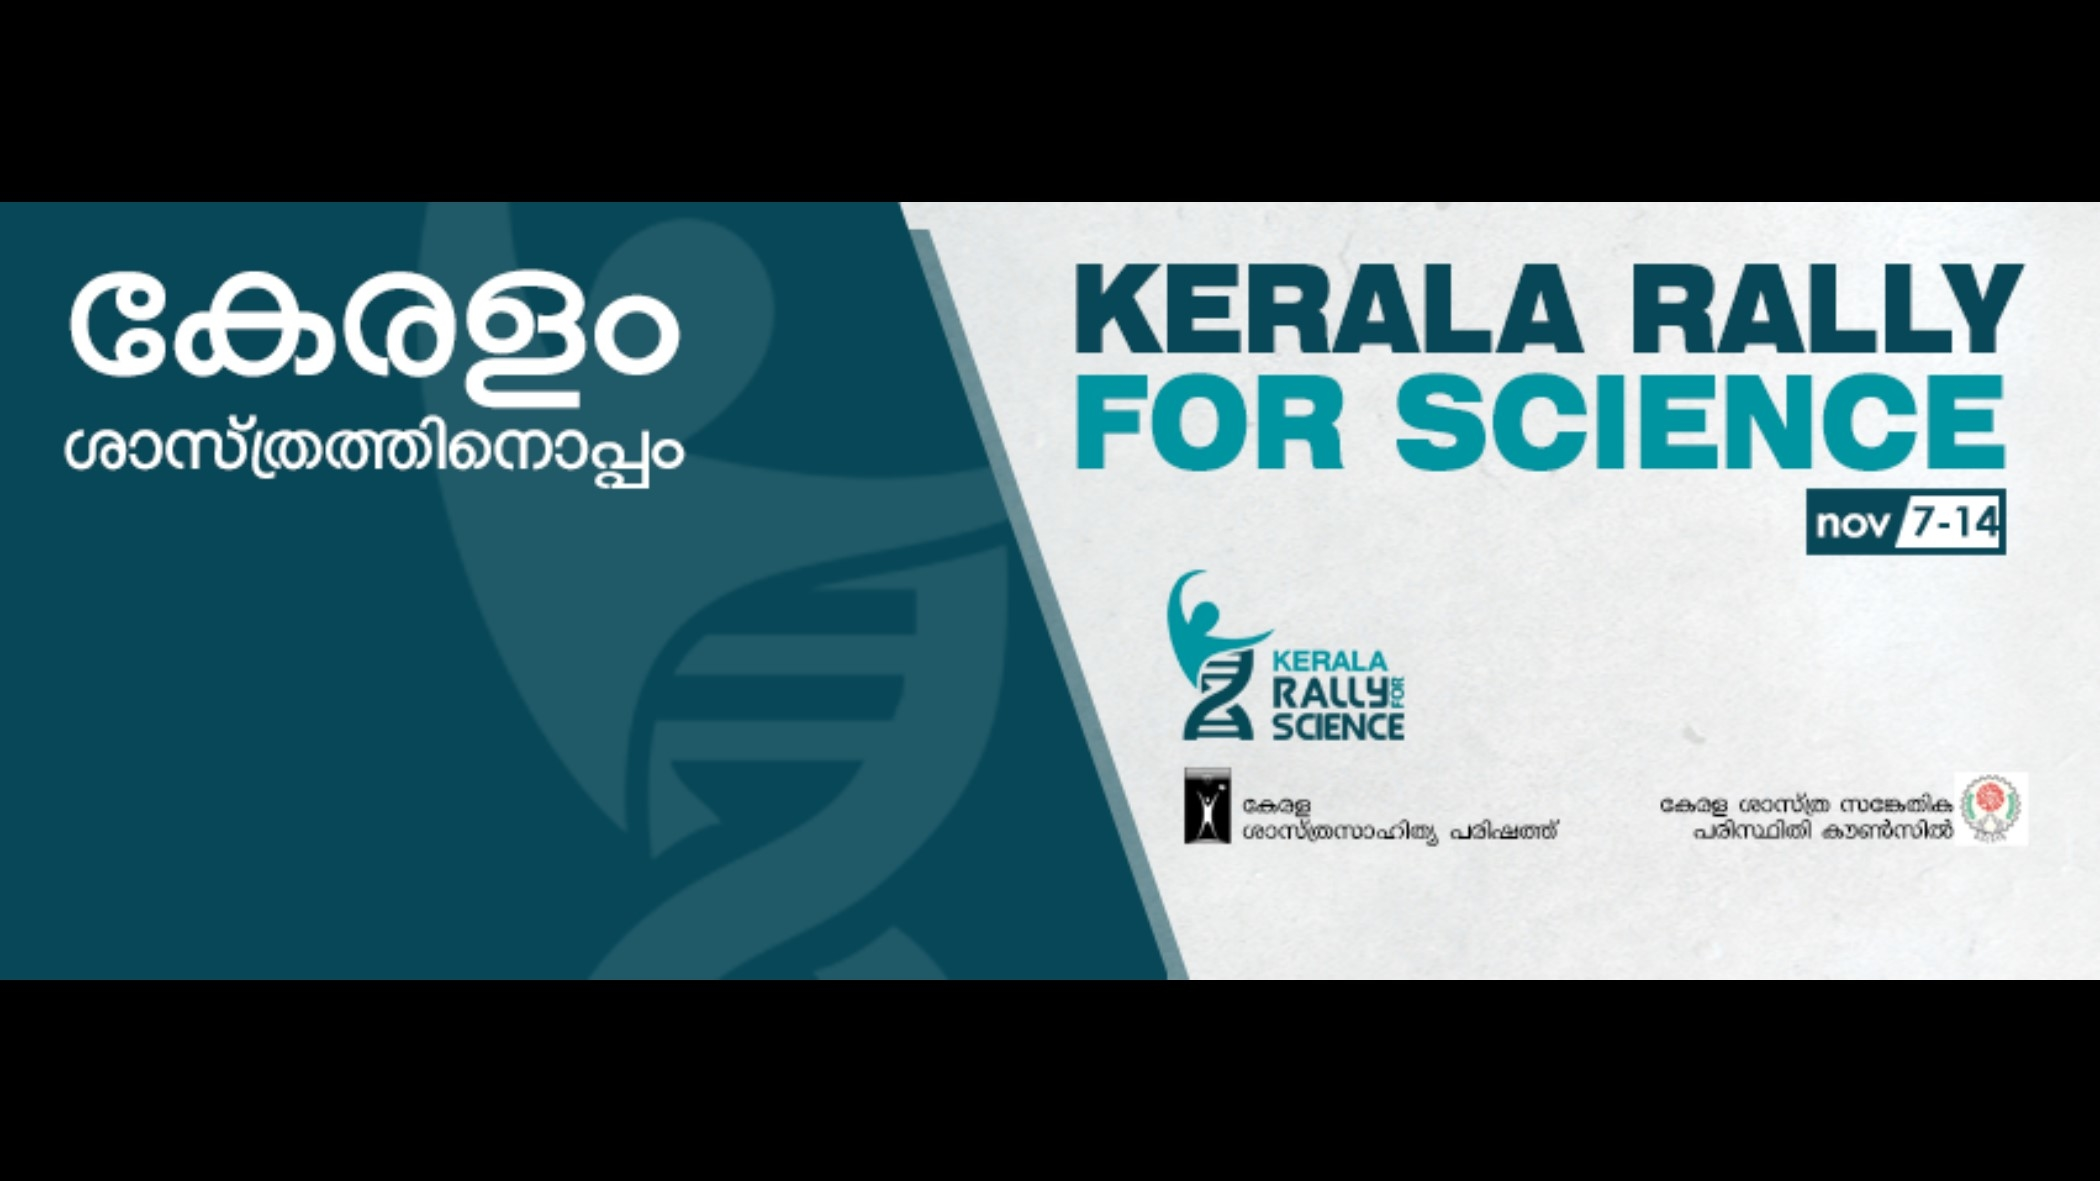 Rally for Science: Kerala's Response to Attacks on Science and Promotion of Obscurantism